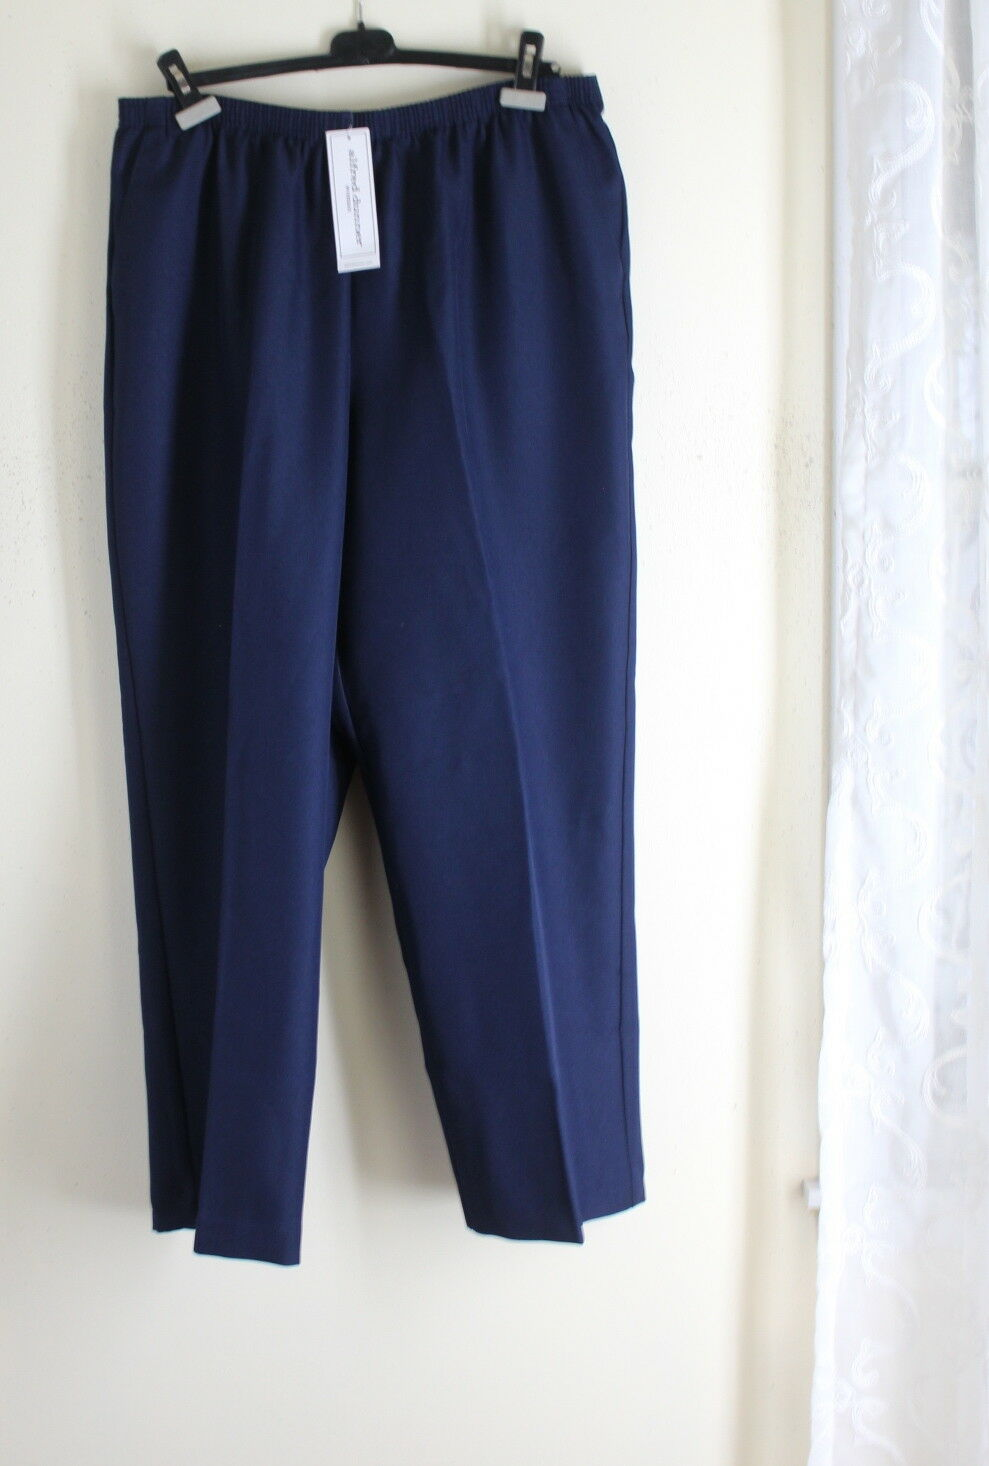 NWT Alfred Dunner -Sz 20W NAVY blueE Elegant Classic Trouser Pants 30  Inseam